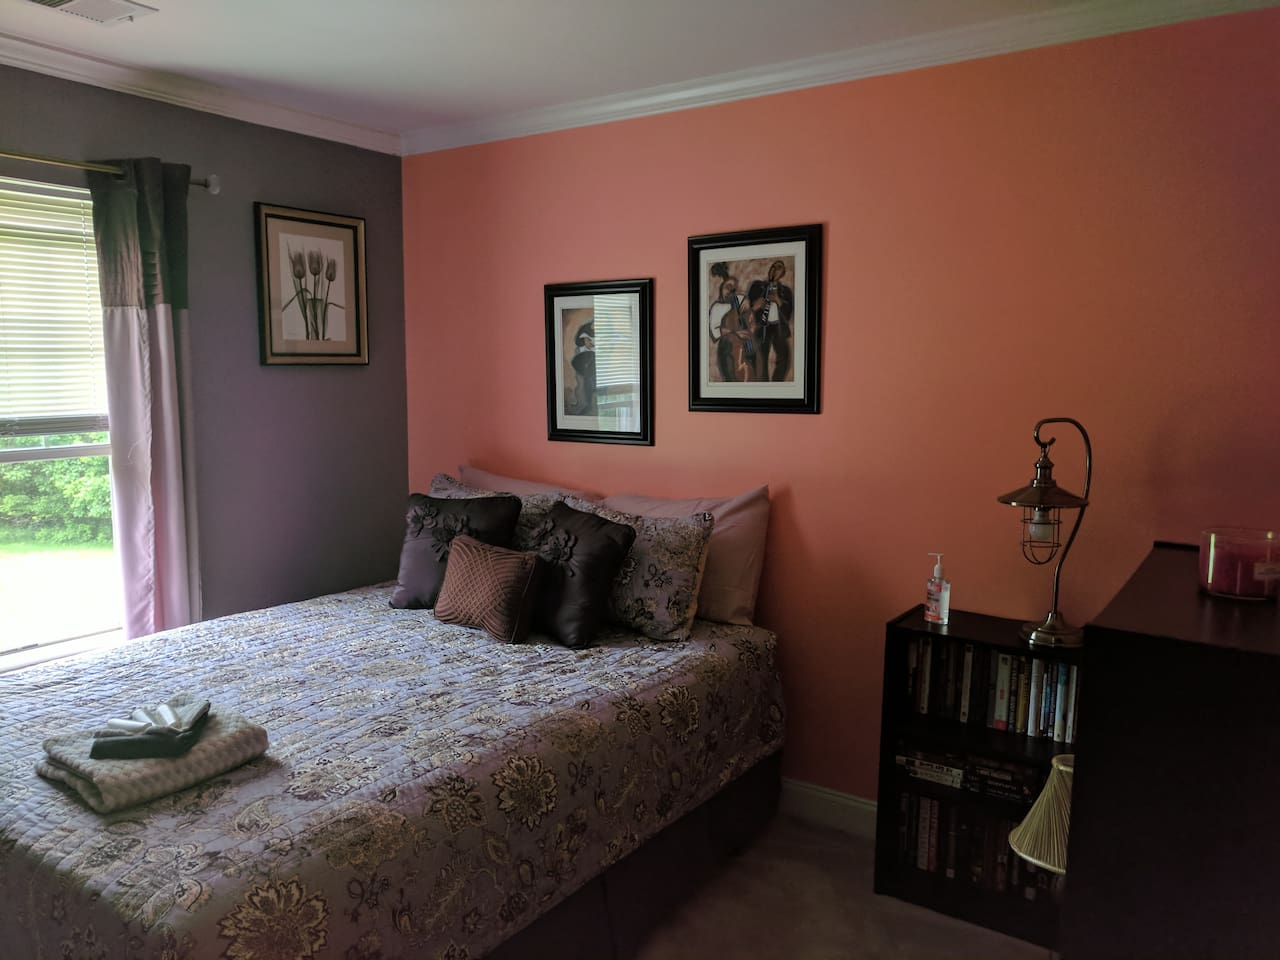 Guestroom #3 is a standard size bedroom with a small closet. It has great character and faces the woods.